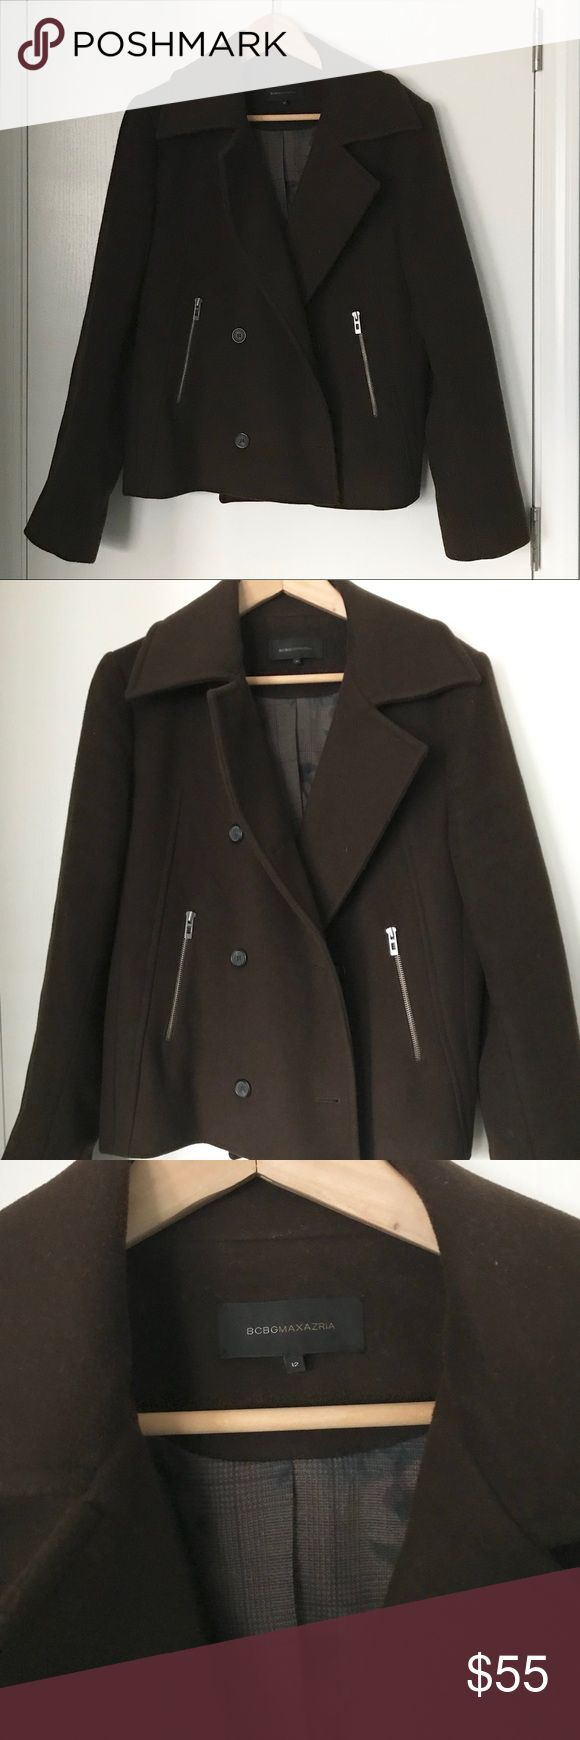 BCBG Wool Cashmere Pea Coat in EUC Gorgeous and soft wool cashmere pea coat in excellent condition. Beautiful floral lining. Silver zipper detail. Add this jacket to your fall or winter wardrobe. BCBG Jackets & Coats Pea Coats